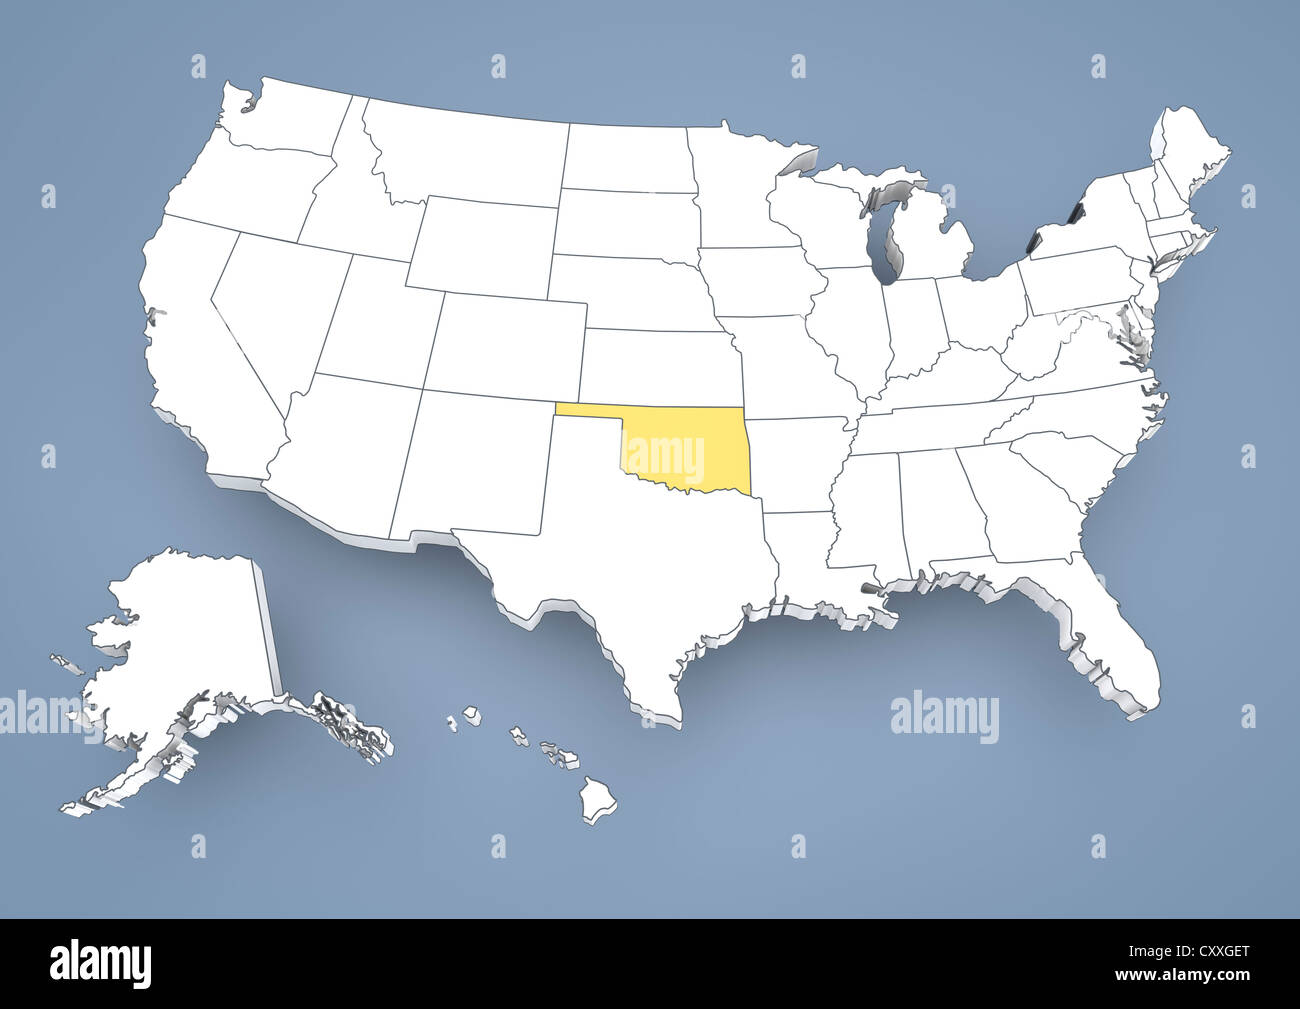 Oklahoma, OK, highlighted on a contour map of USA, United States of ...